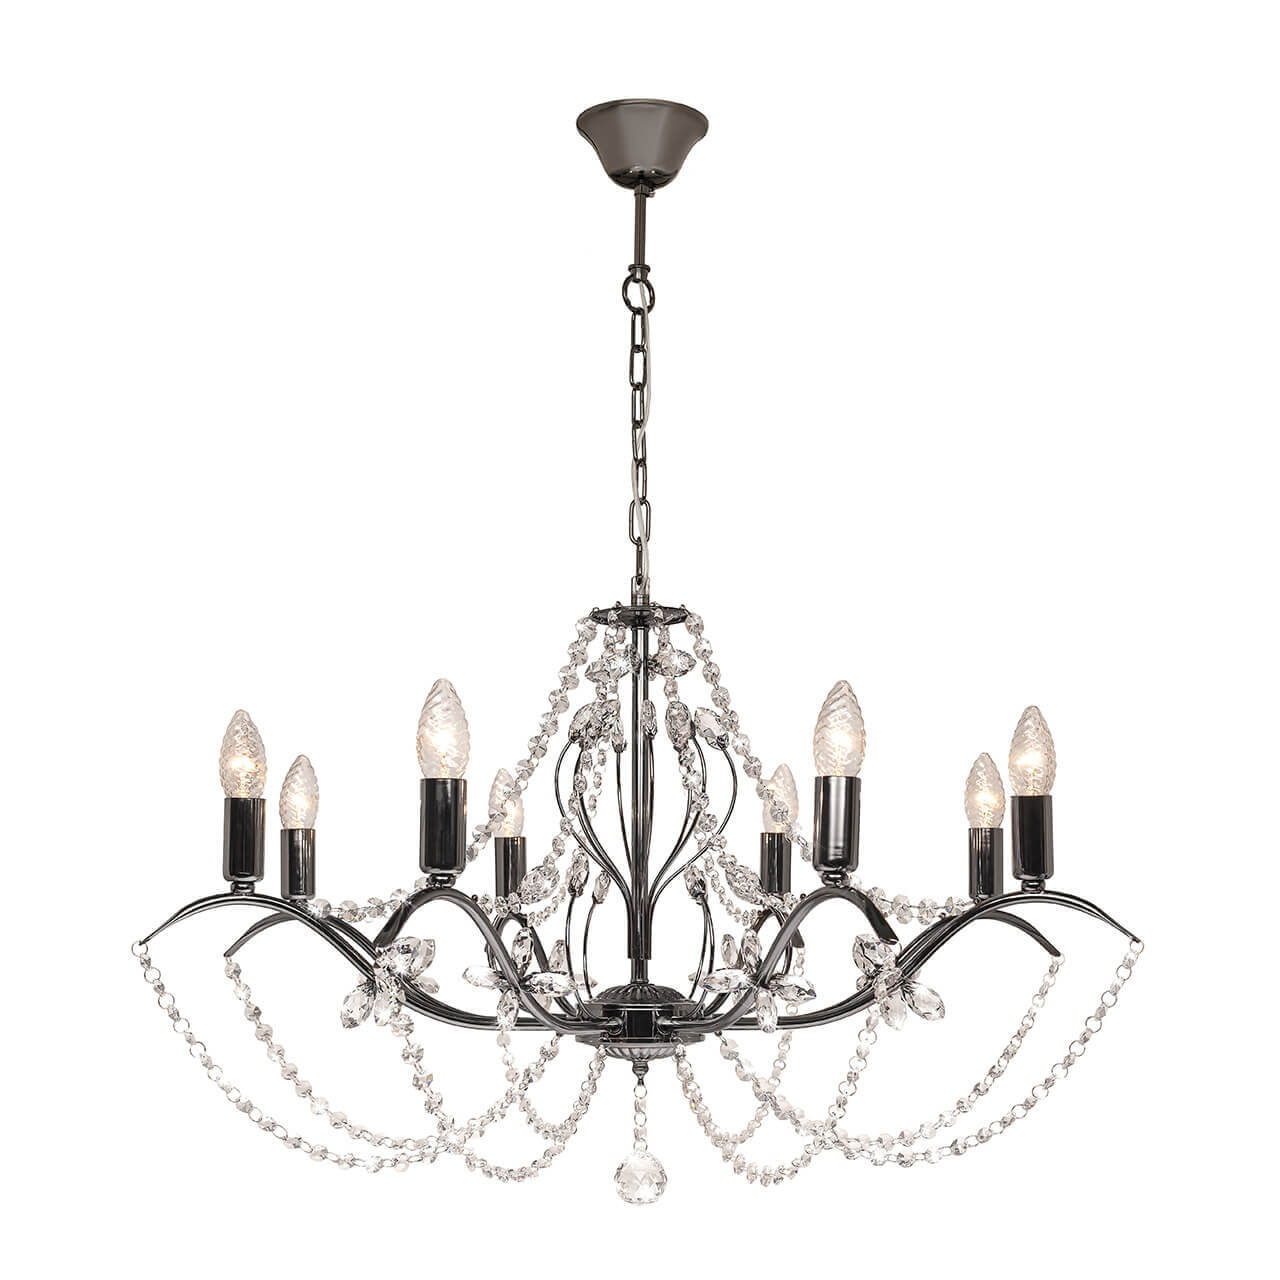 Люстра Silver Light 726.59.8 Antoinette Black бра silver light 726 48 1 antoinette